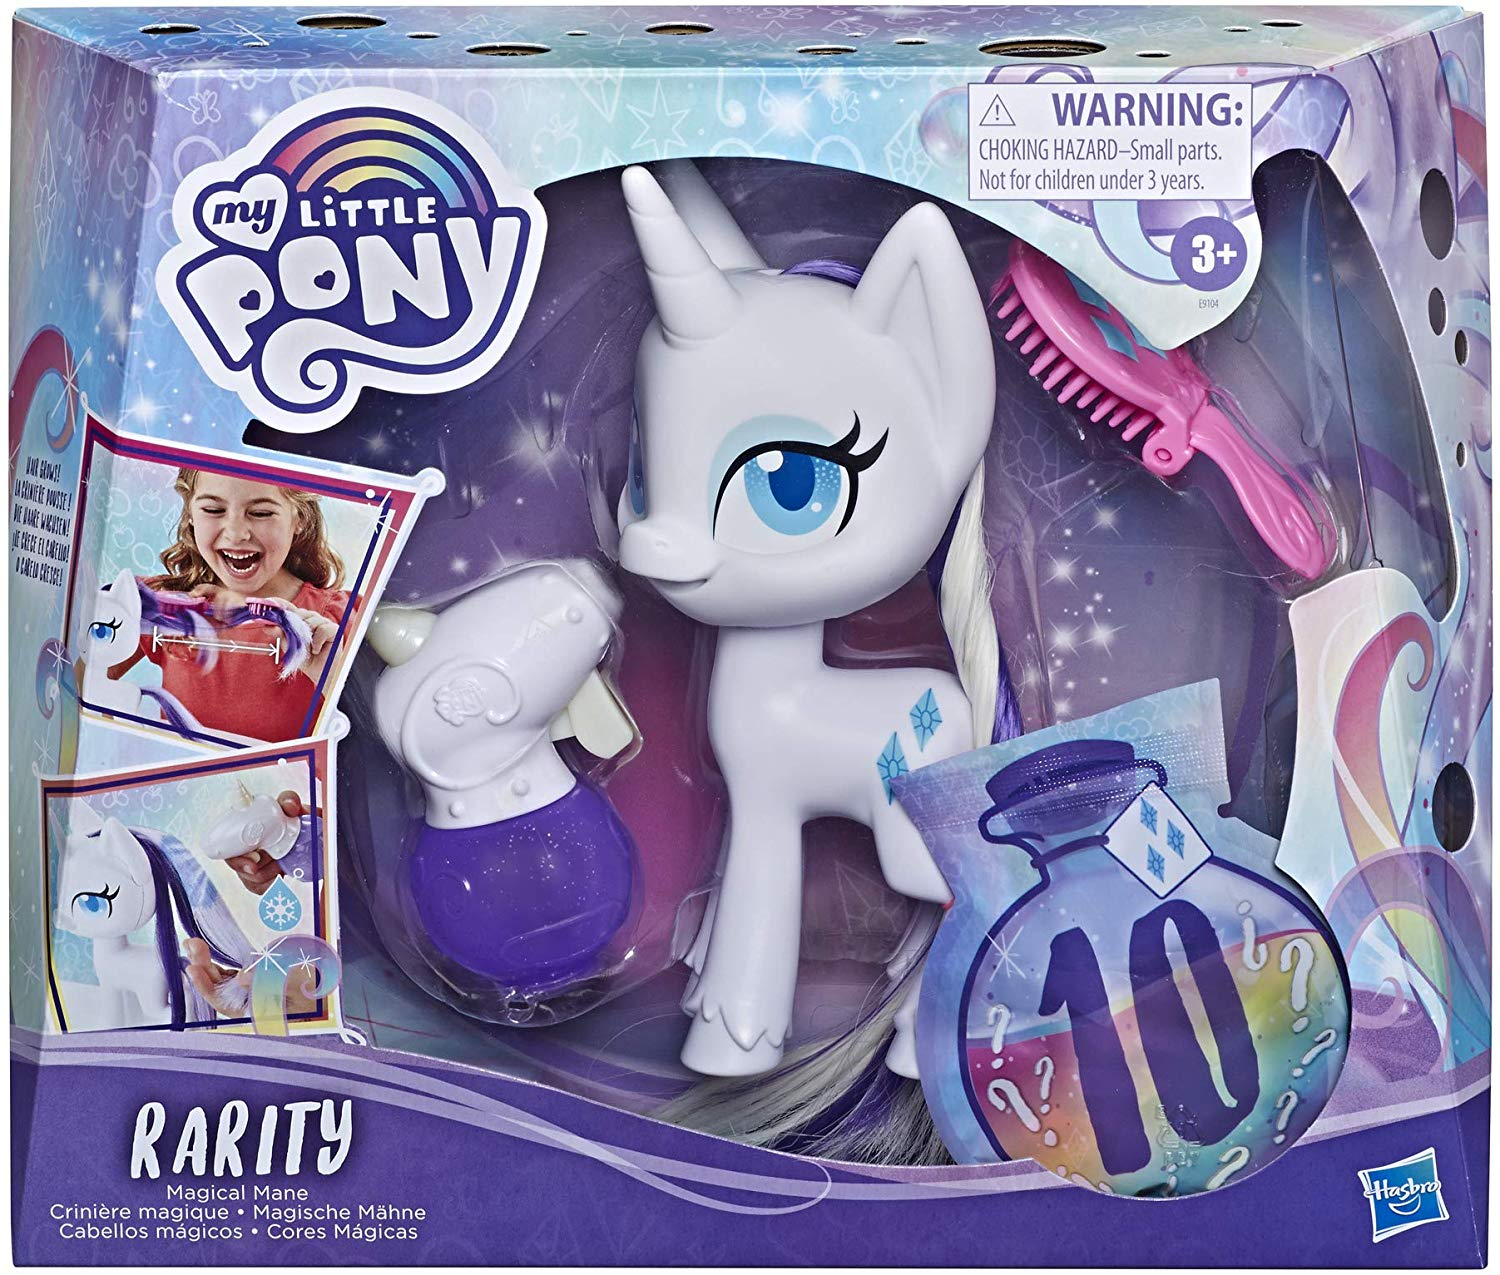 My Little Pony is launching a new animated series and toy line 21